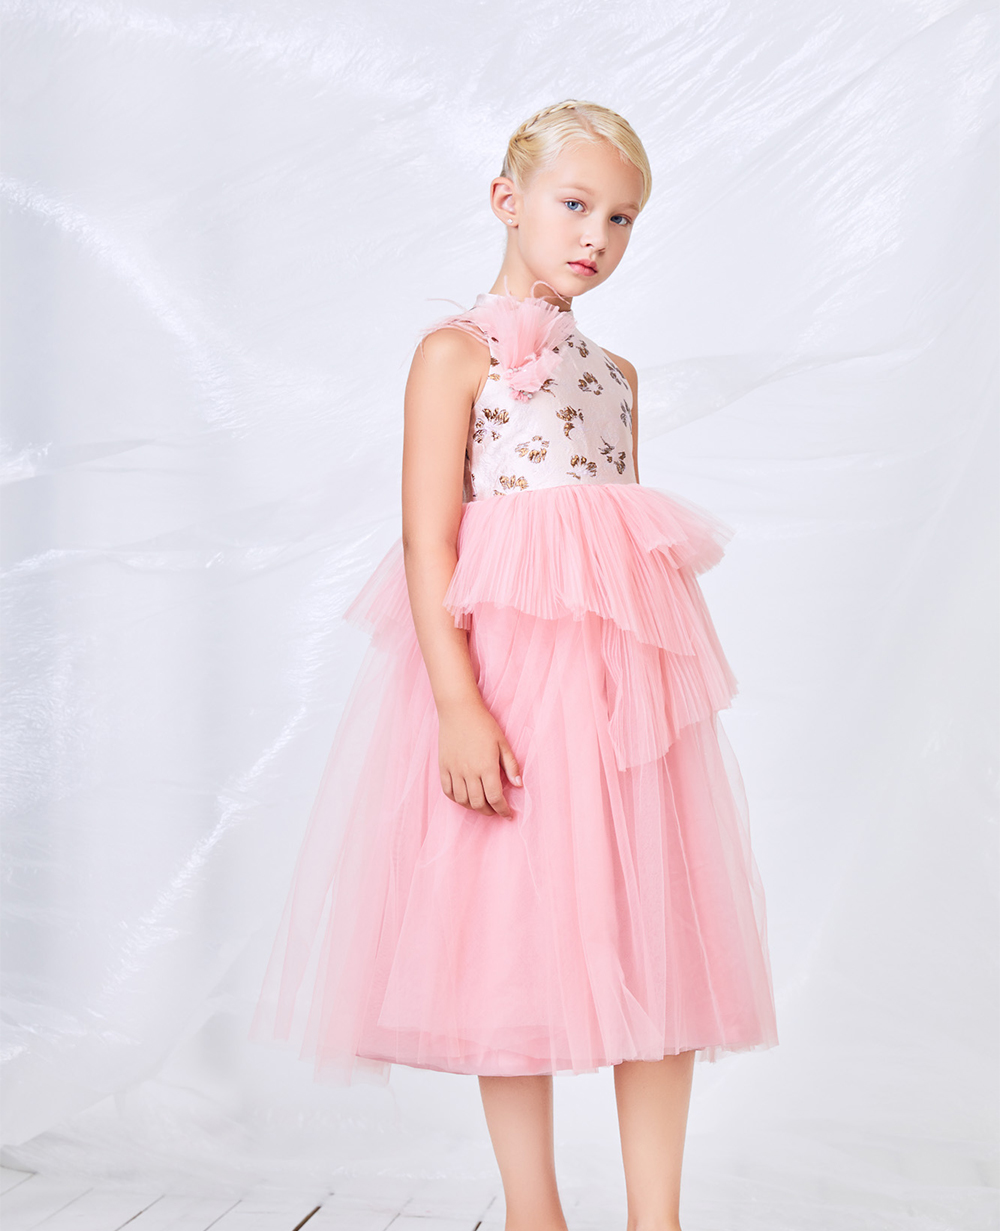 Pink Tulle Princess Dress Tulle Skirt Floral Dress